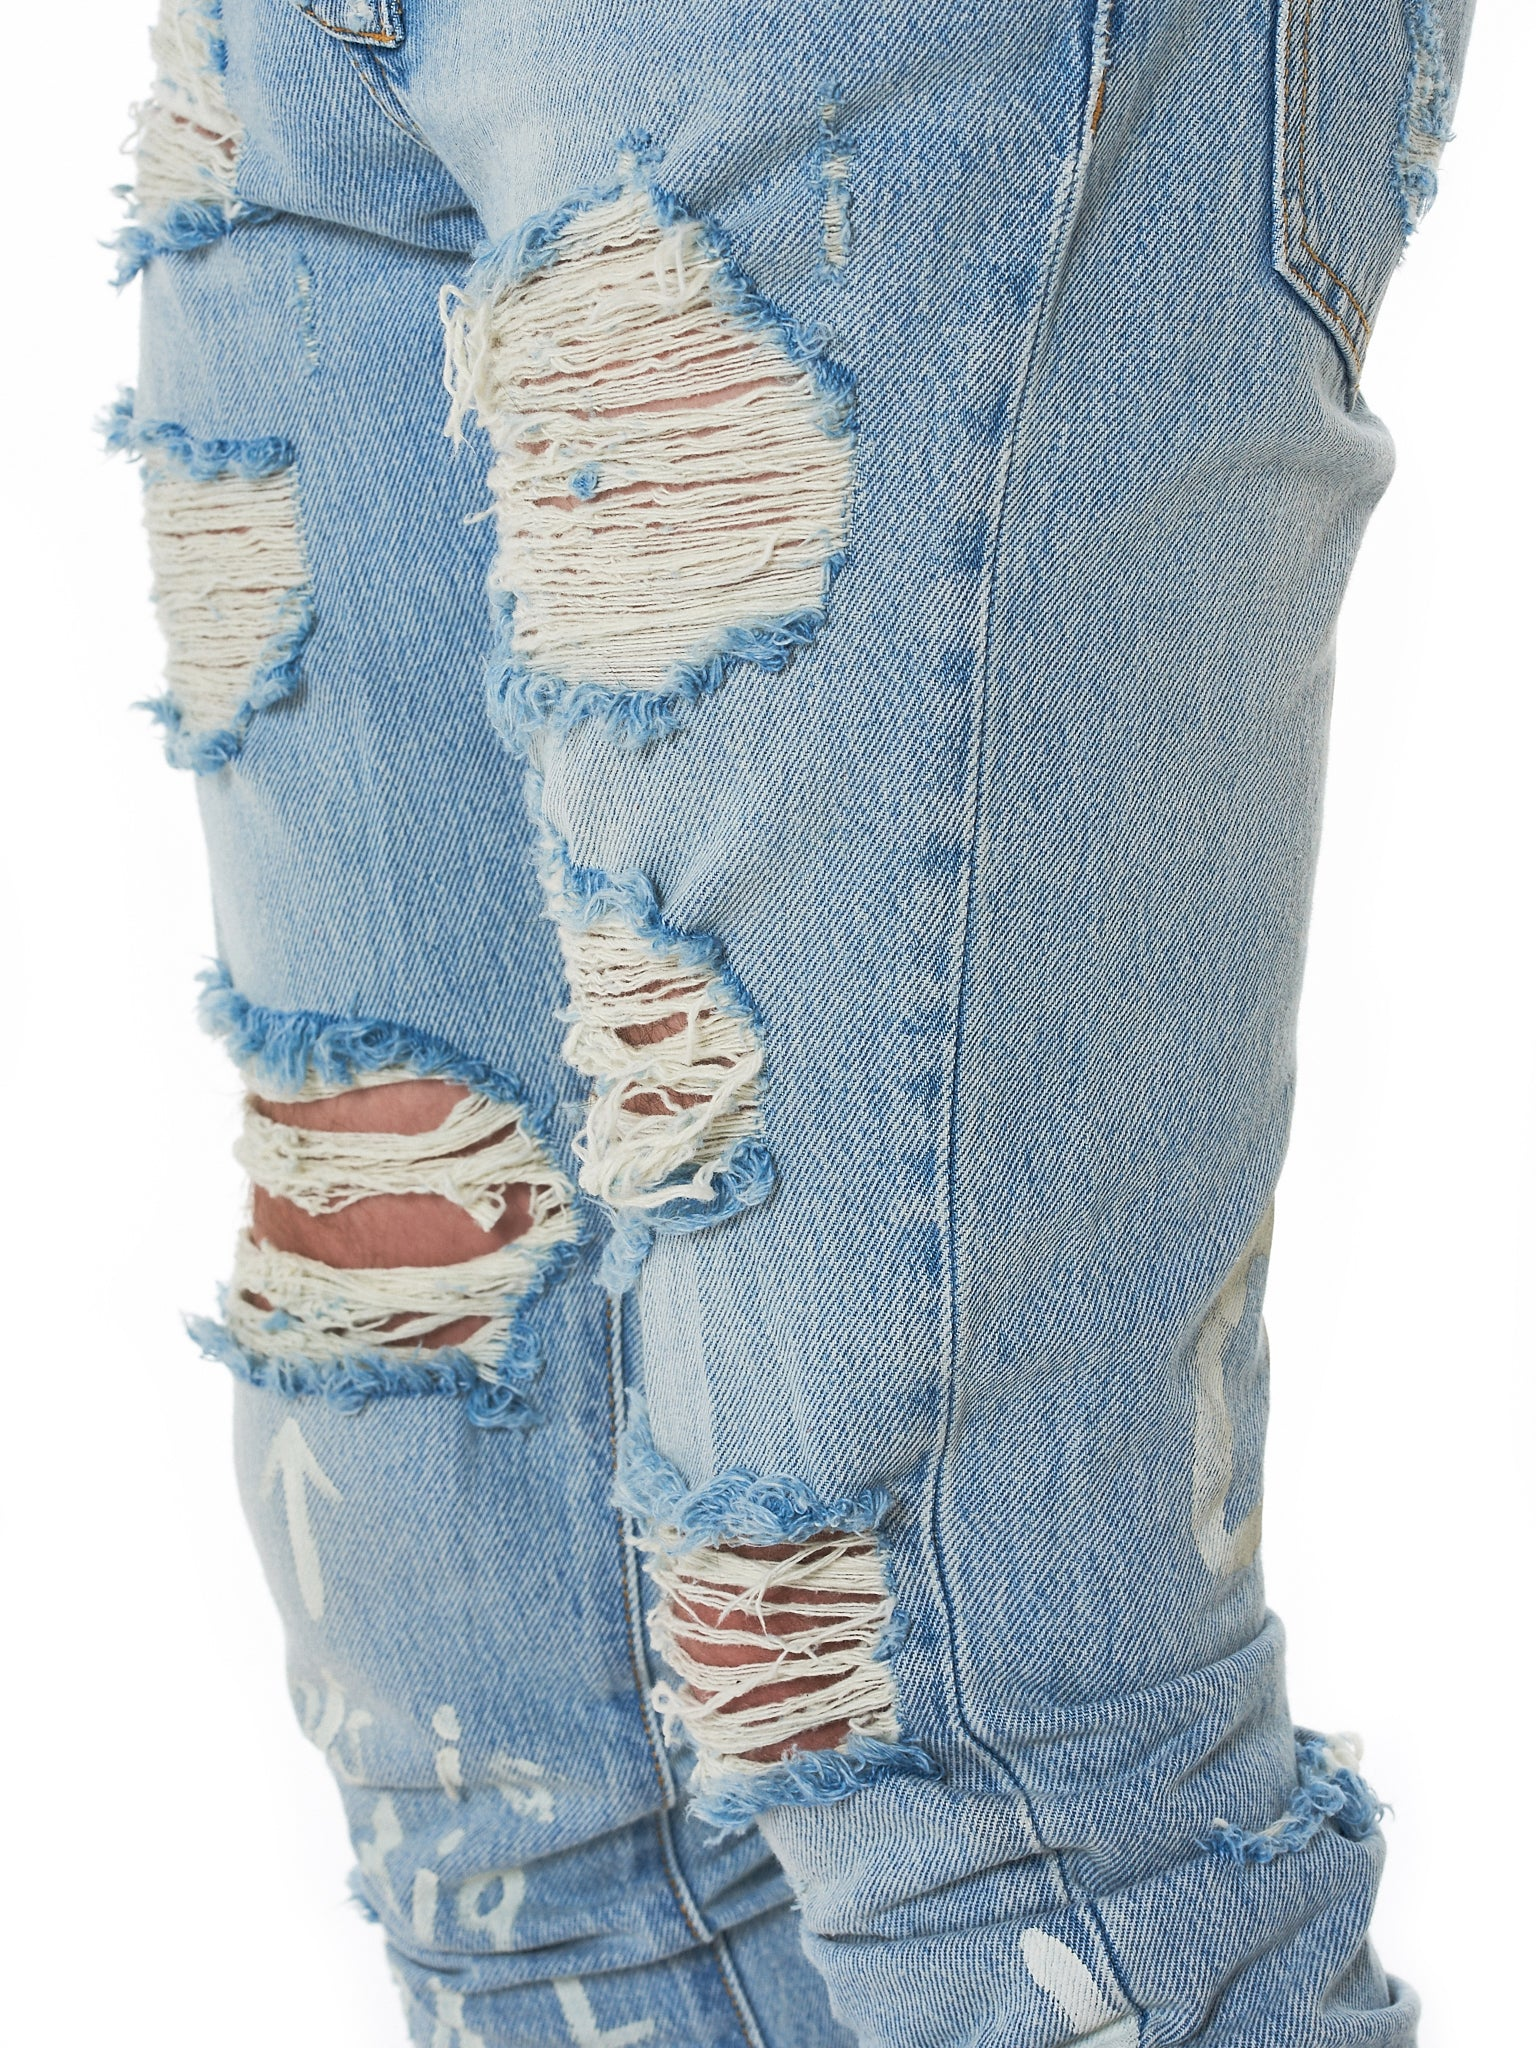 IH NOM UH NIT Distressed Denim - Hlorenzo Detail 4